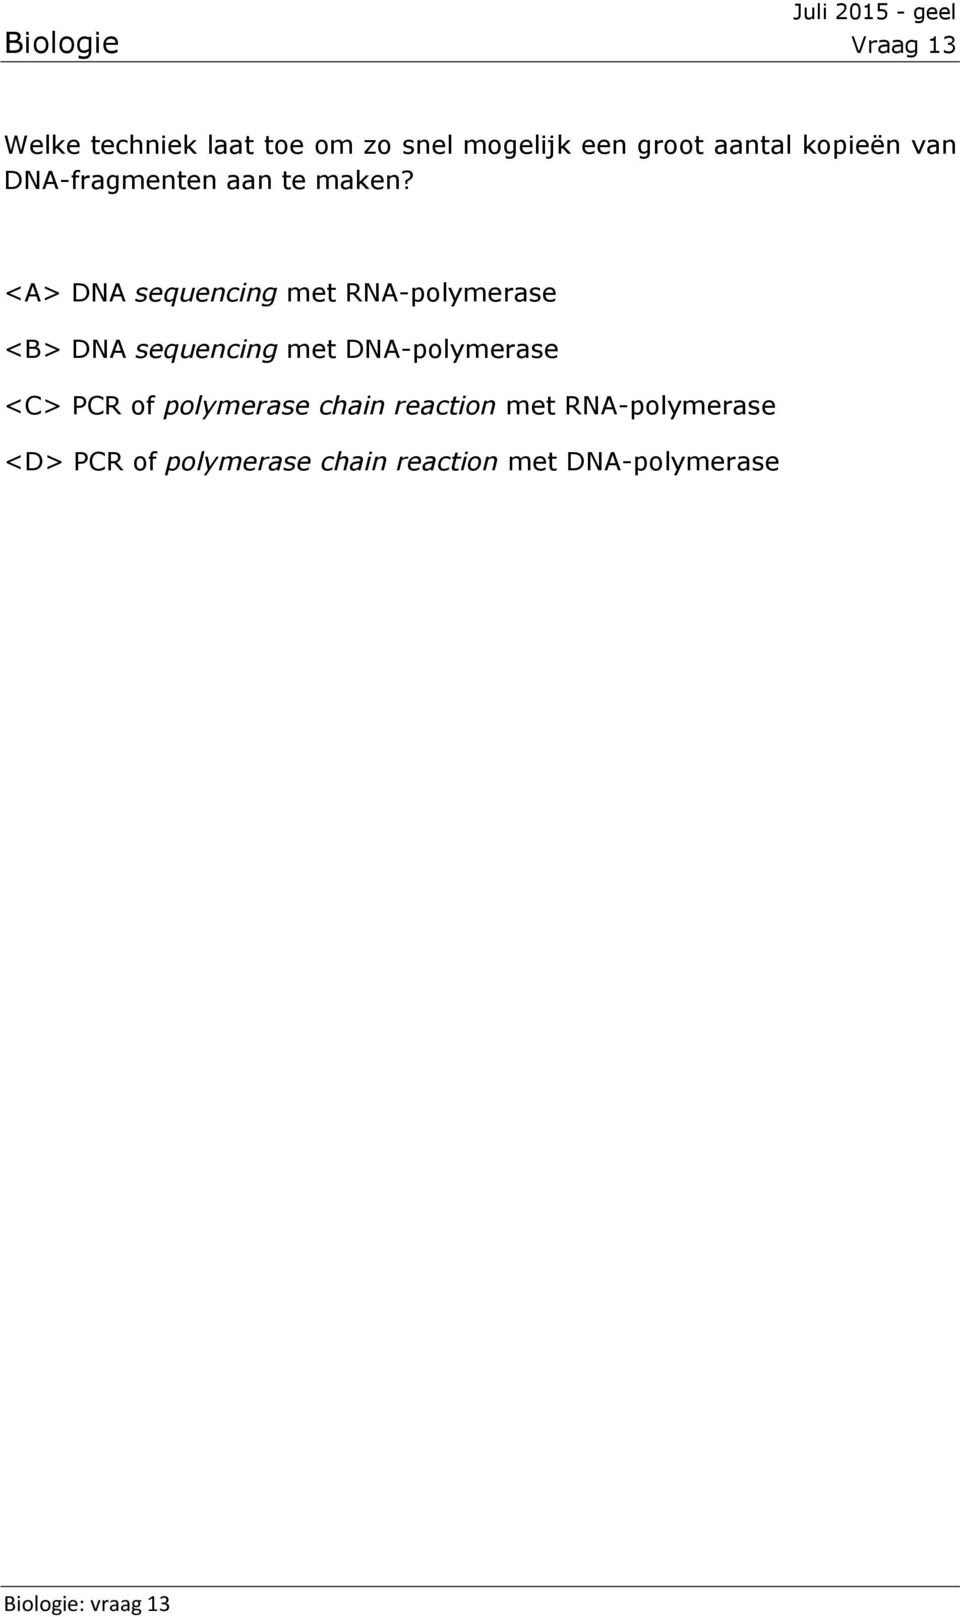 <A> DNA sequencing met RNA-polymerase <B> DNA sequencing met DNA-polymerase <C>